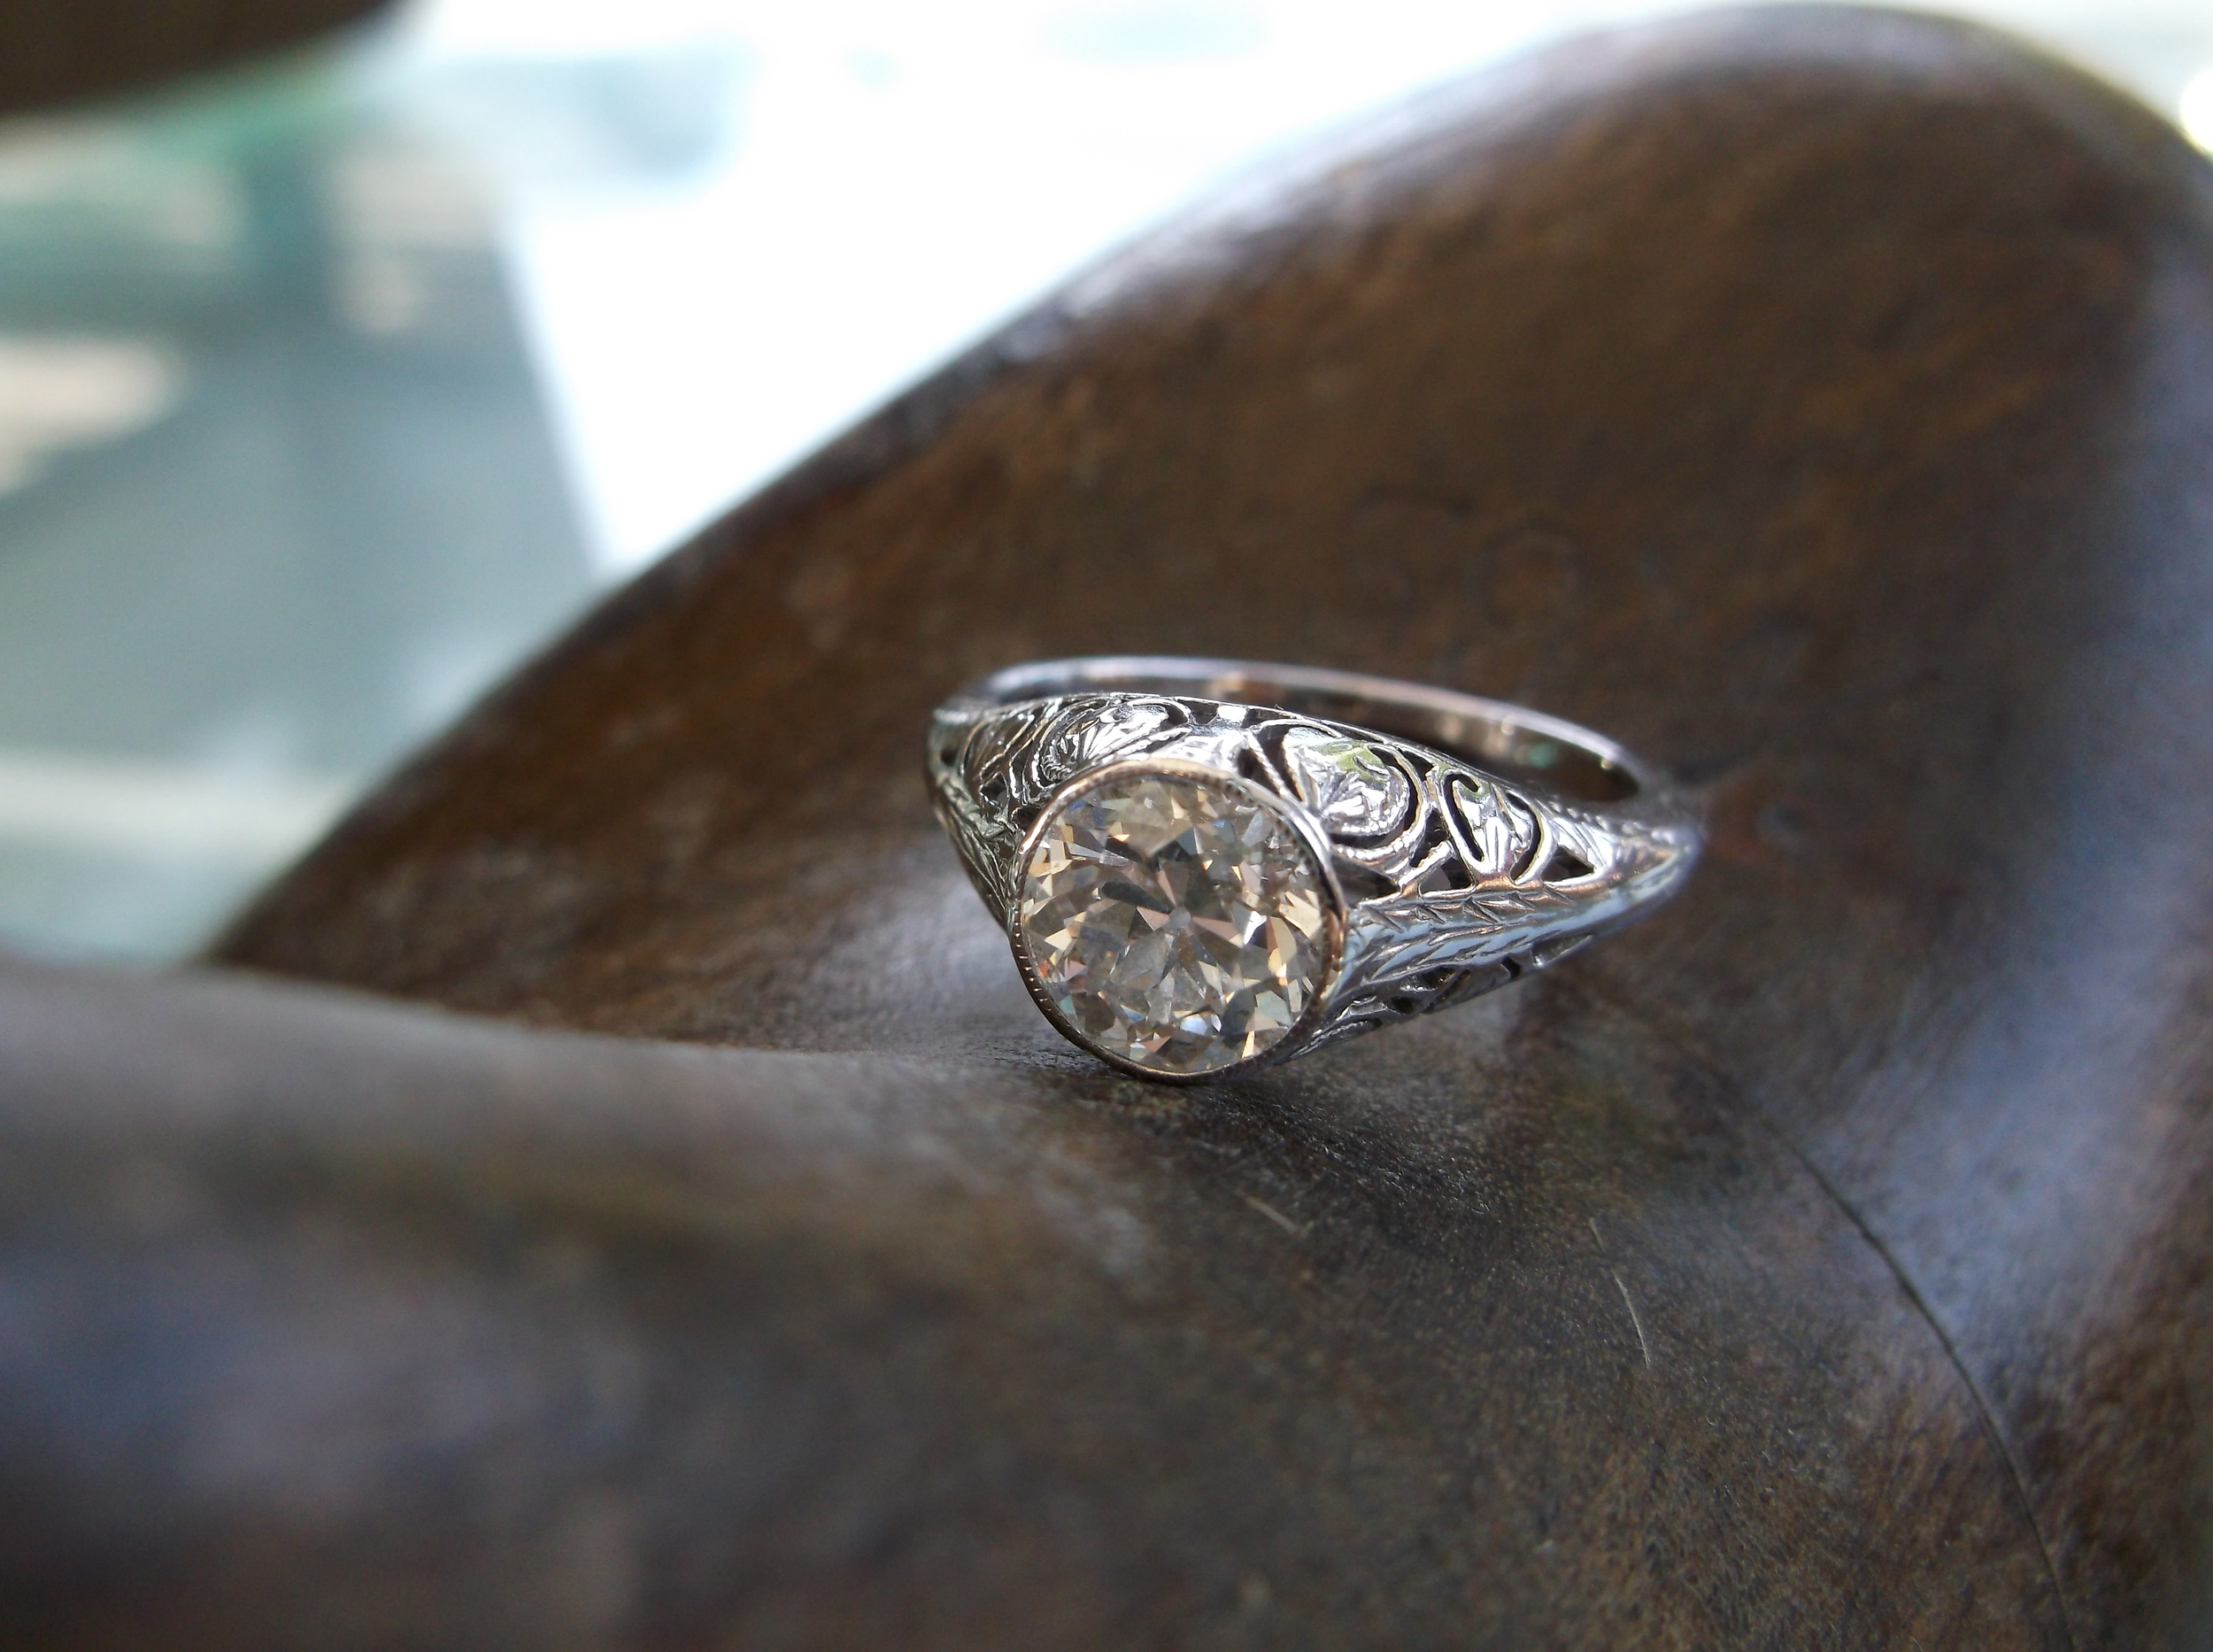 SOLD - Gorgeous Art Deco 1.27 carat diamond ring set in a gorgeous white gold filigree bezel set mounting.